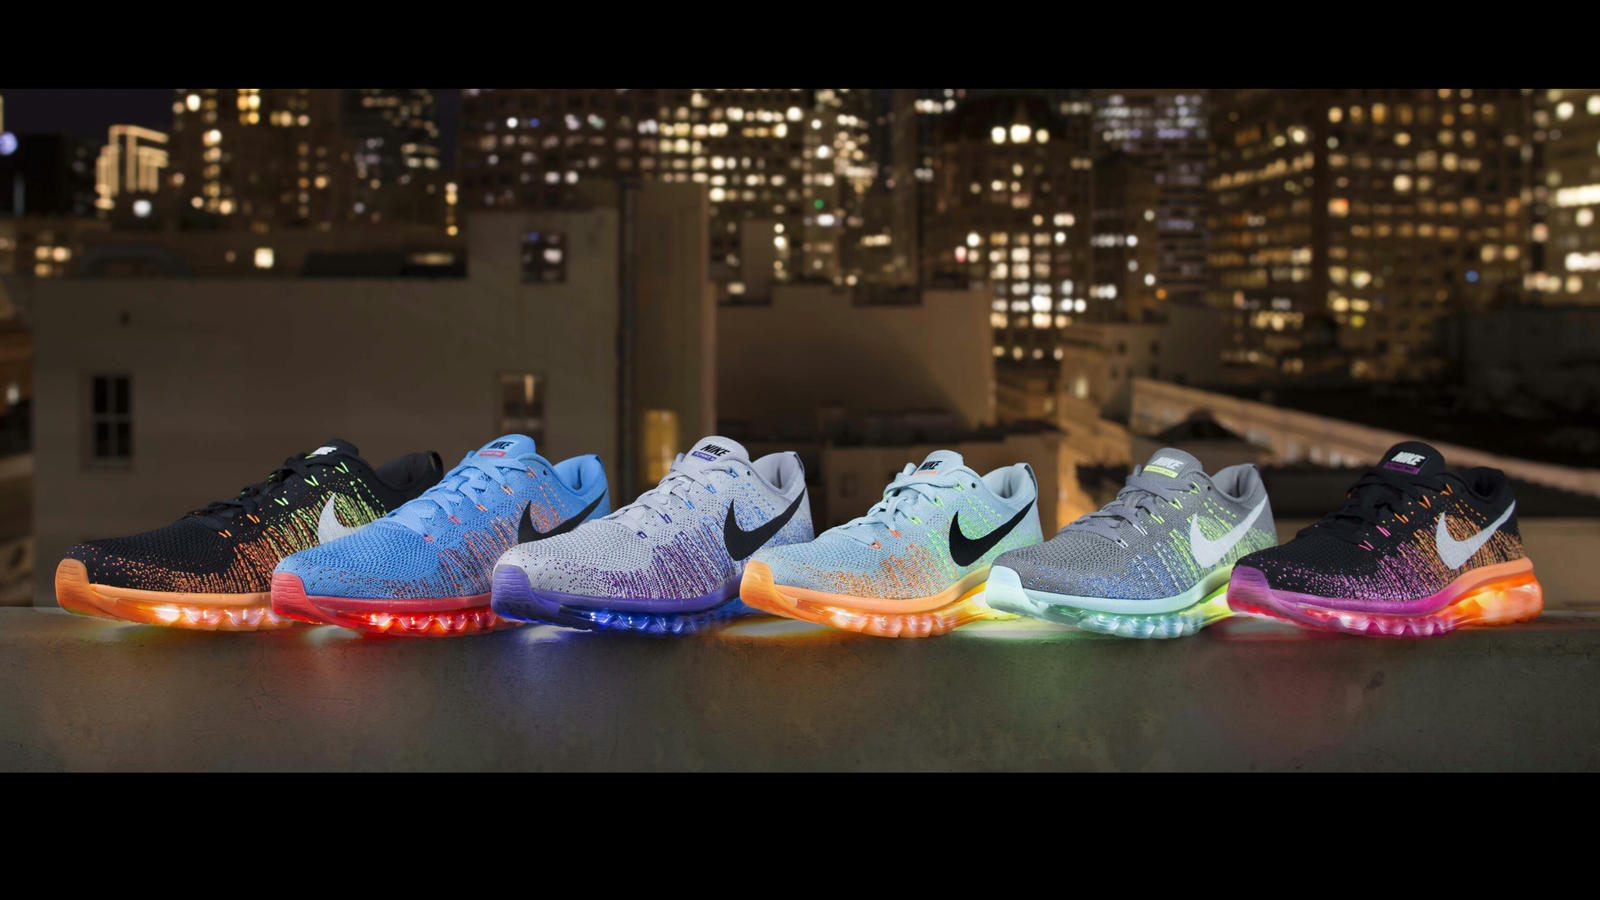 separation shoes c3604 dea87 Nike Flyknit Air Max Now Available - Nike News